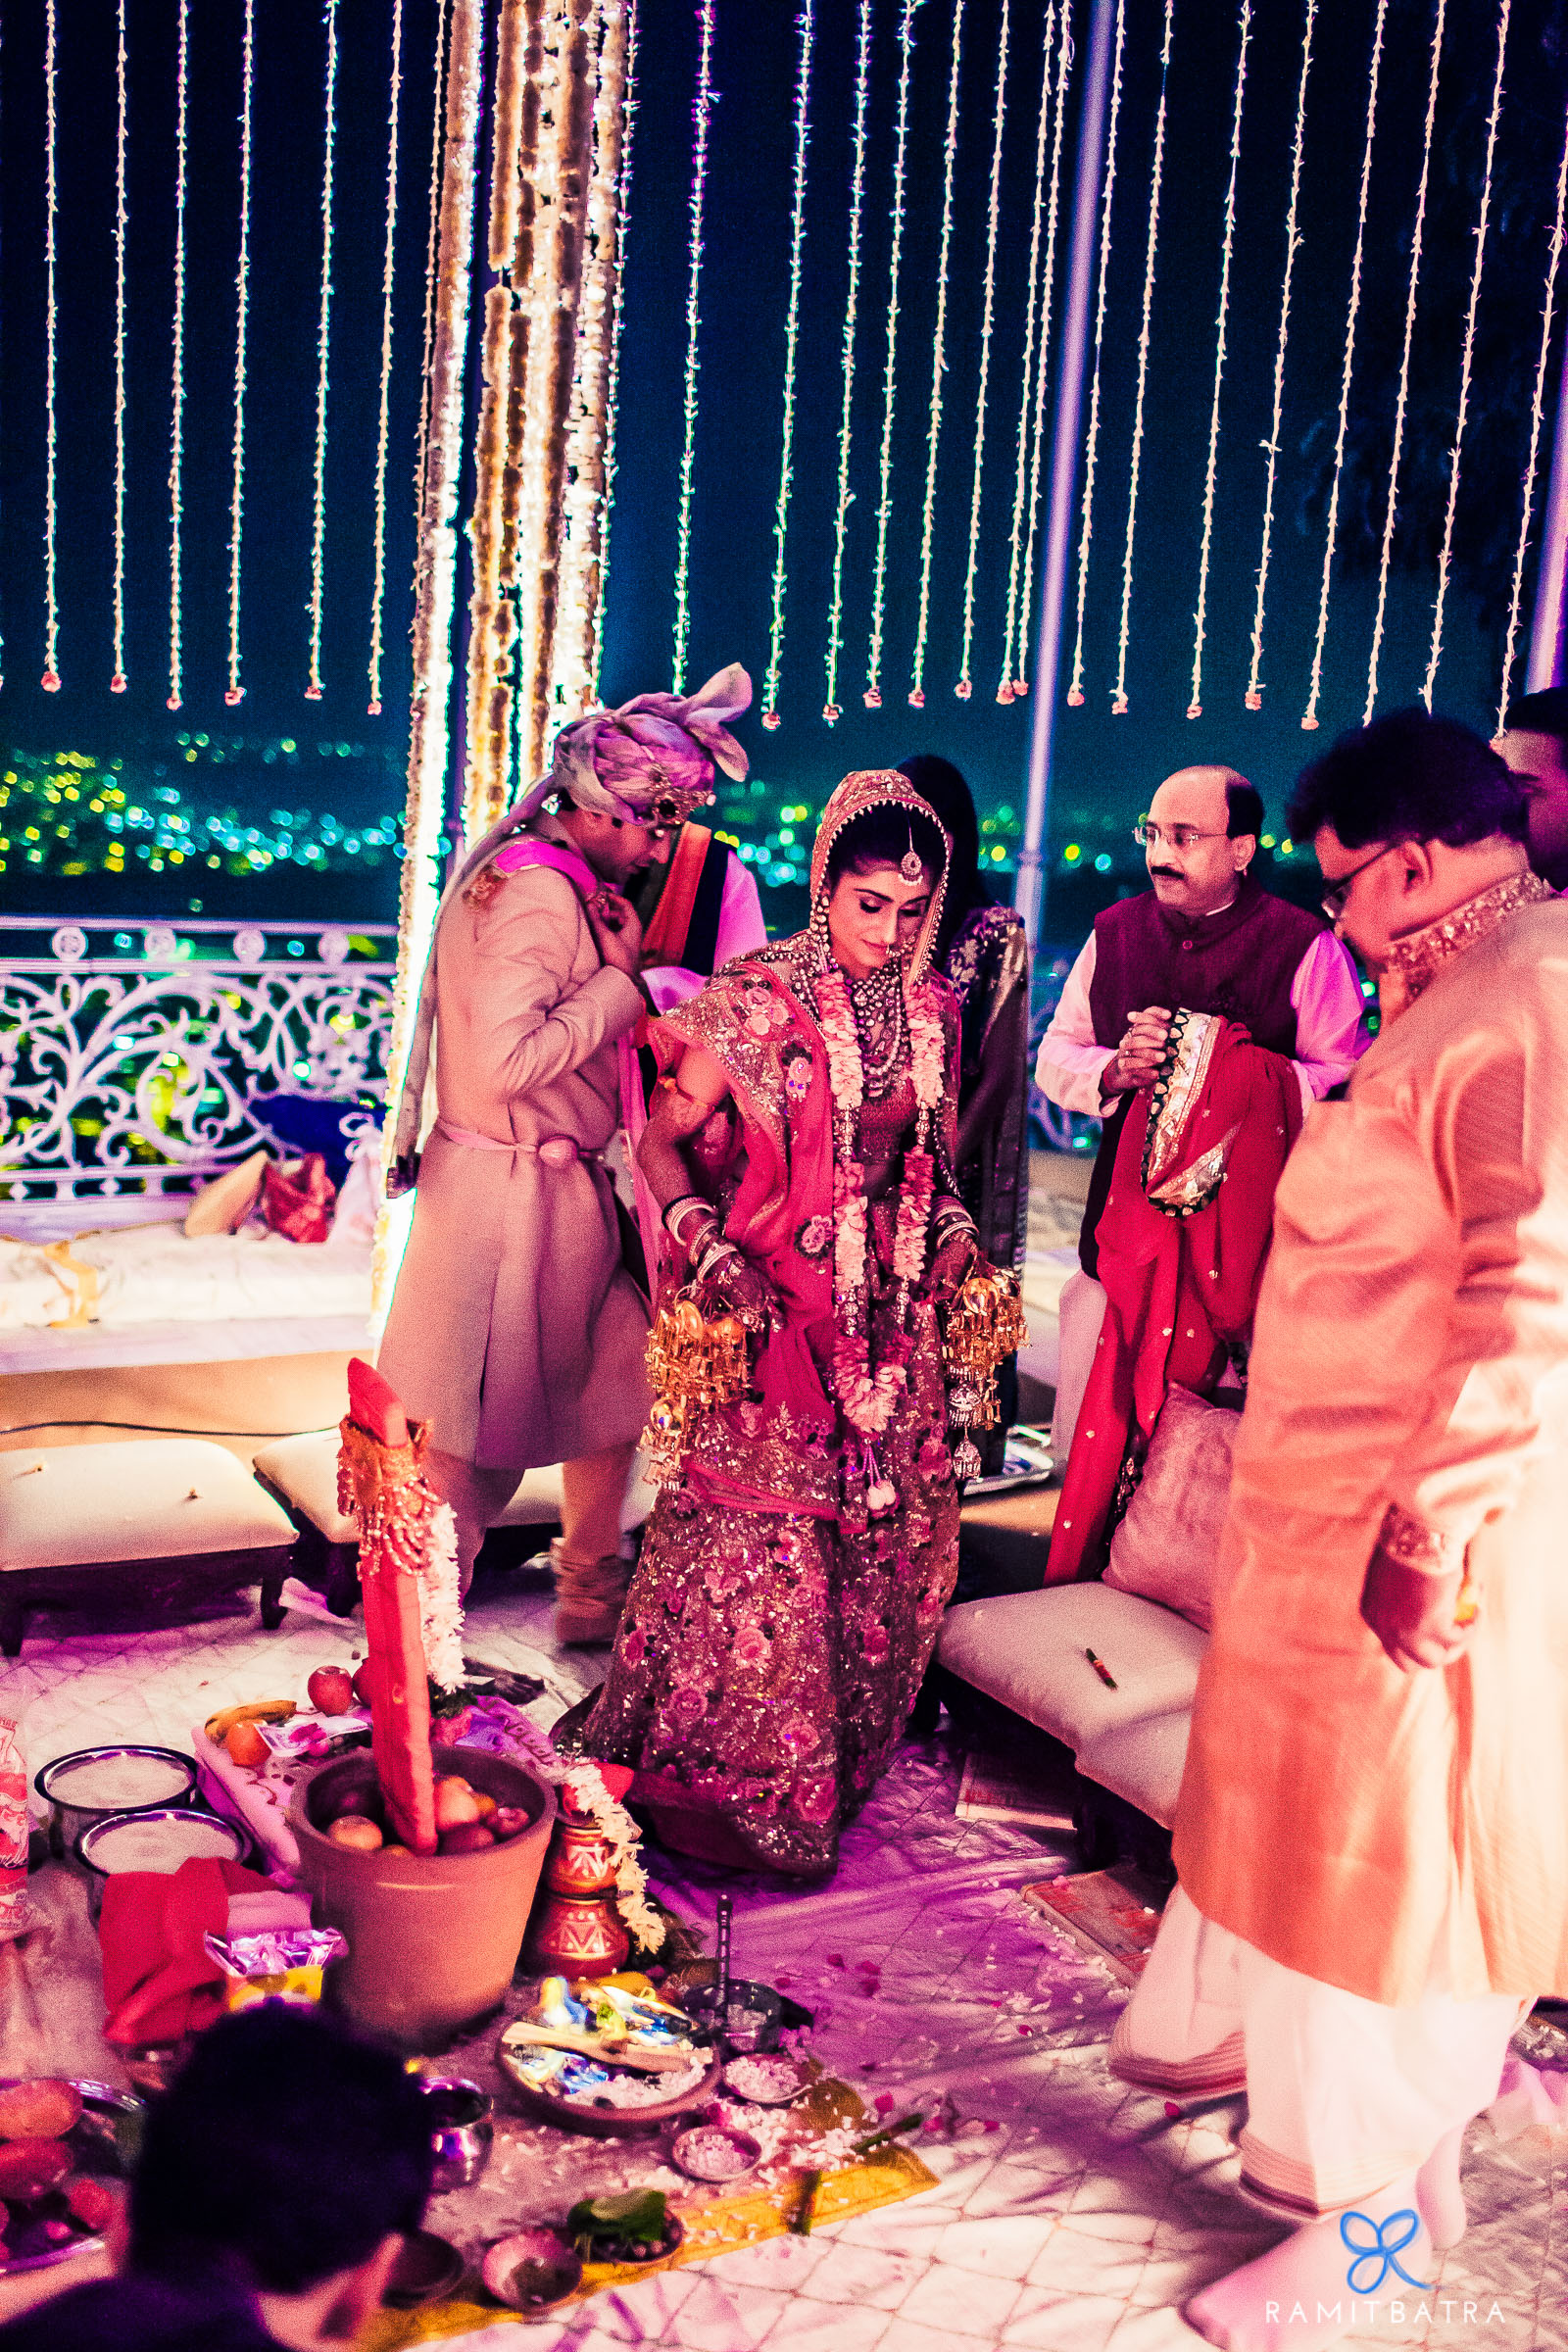 Wedding-Photographer-Hyderabad-India-RamitBatra_66